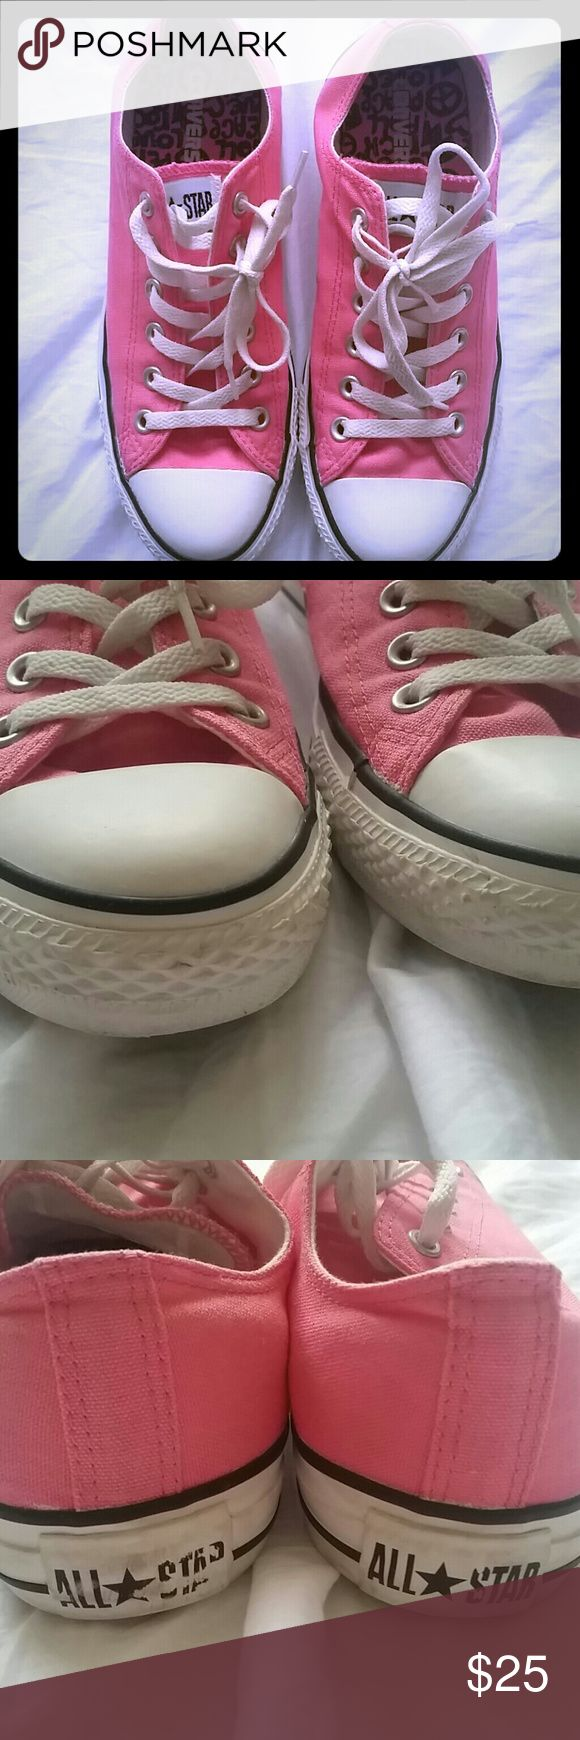 Pink Lady Converse Sneakers Excellent condition, minor scuffs (mostly the heel and toes). Rarely worn. Converse Shoes Sneakers